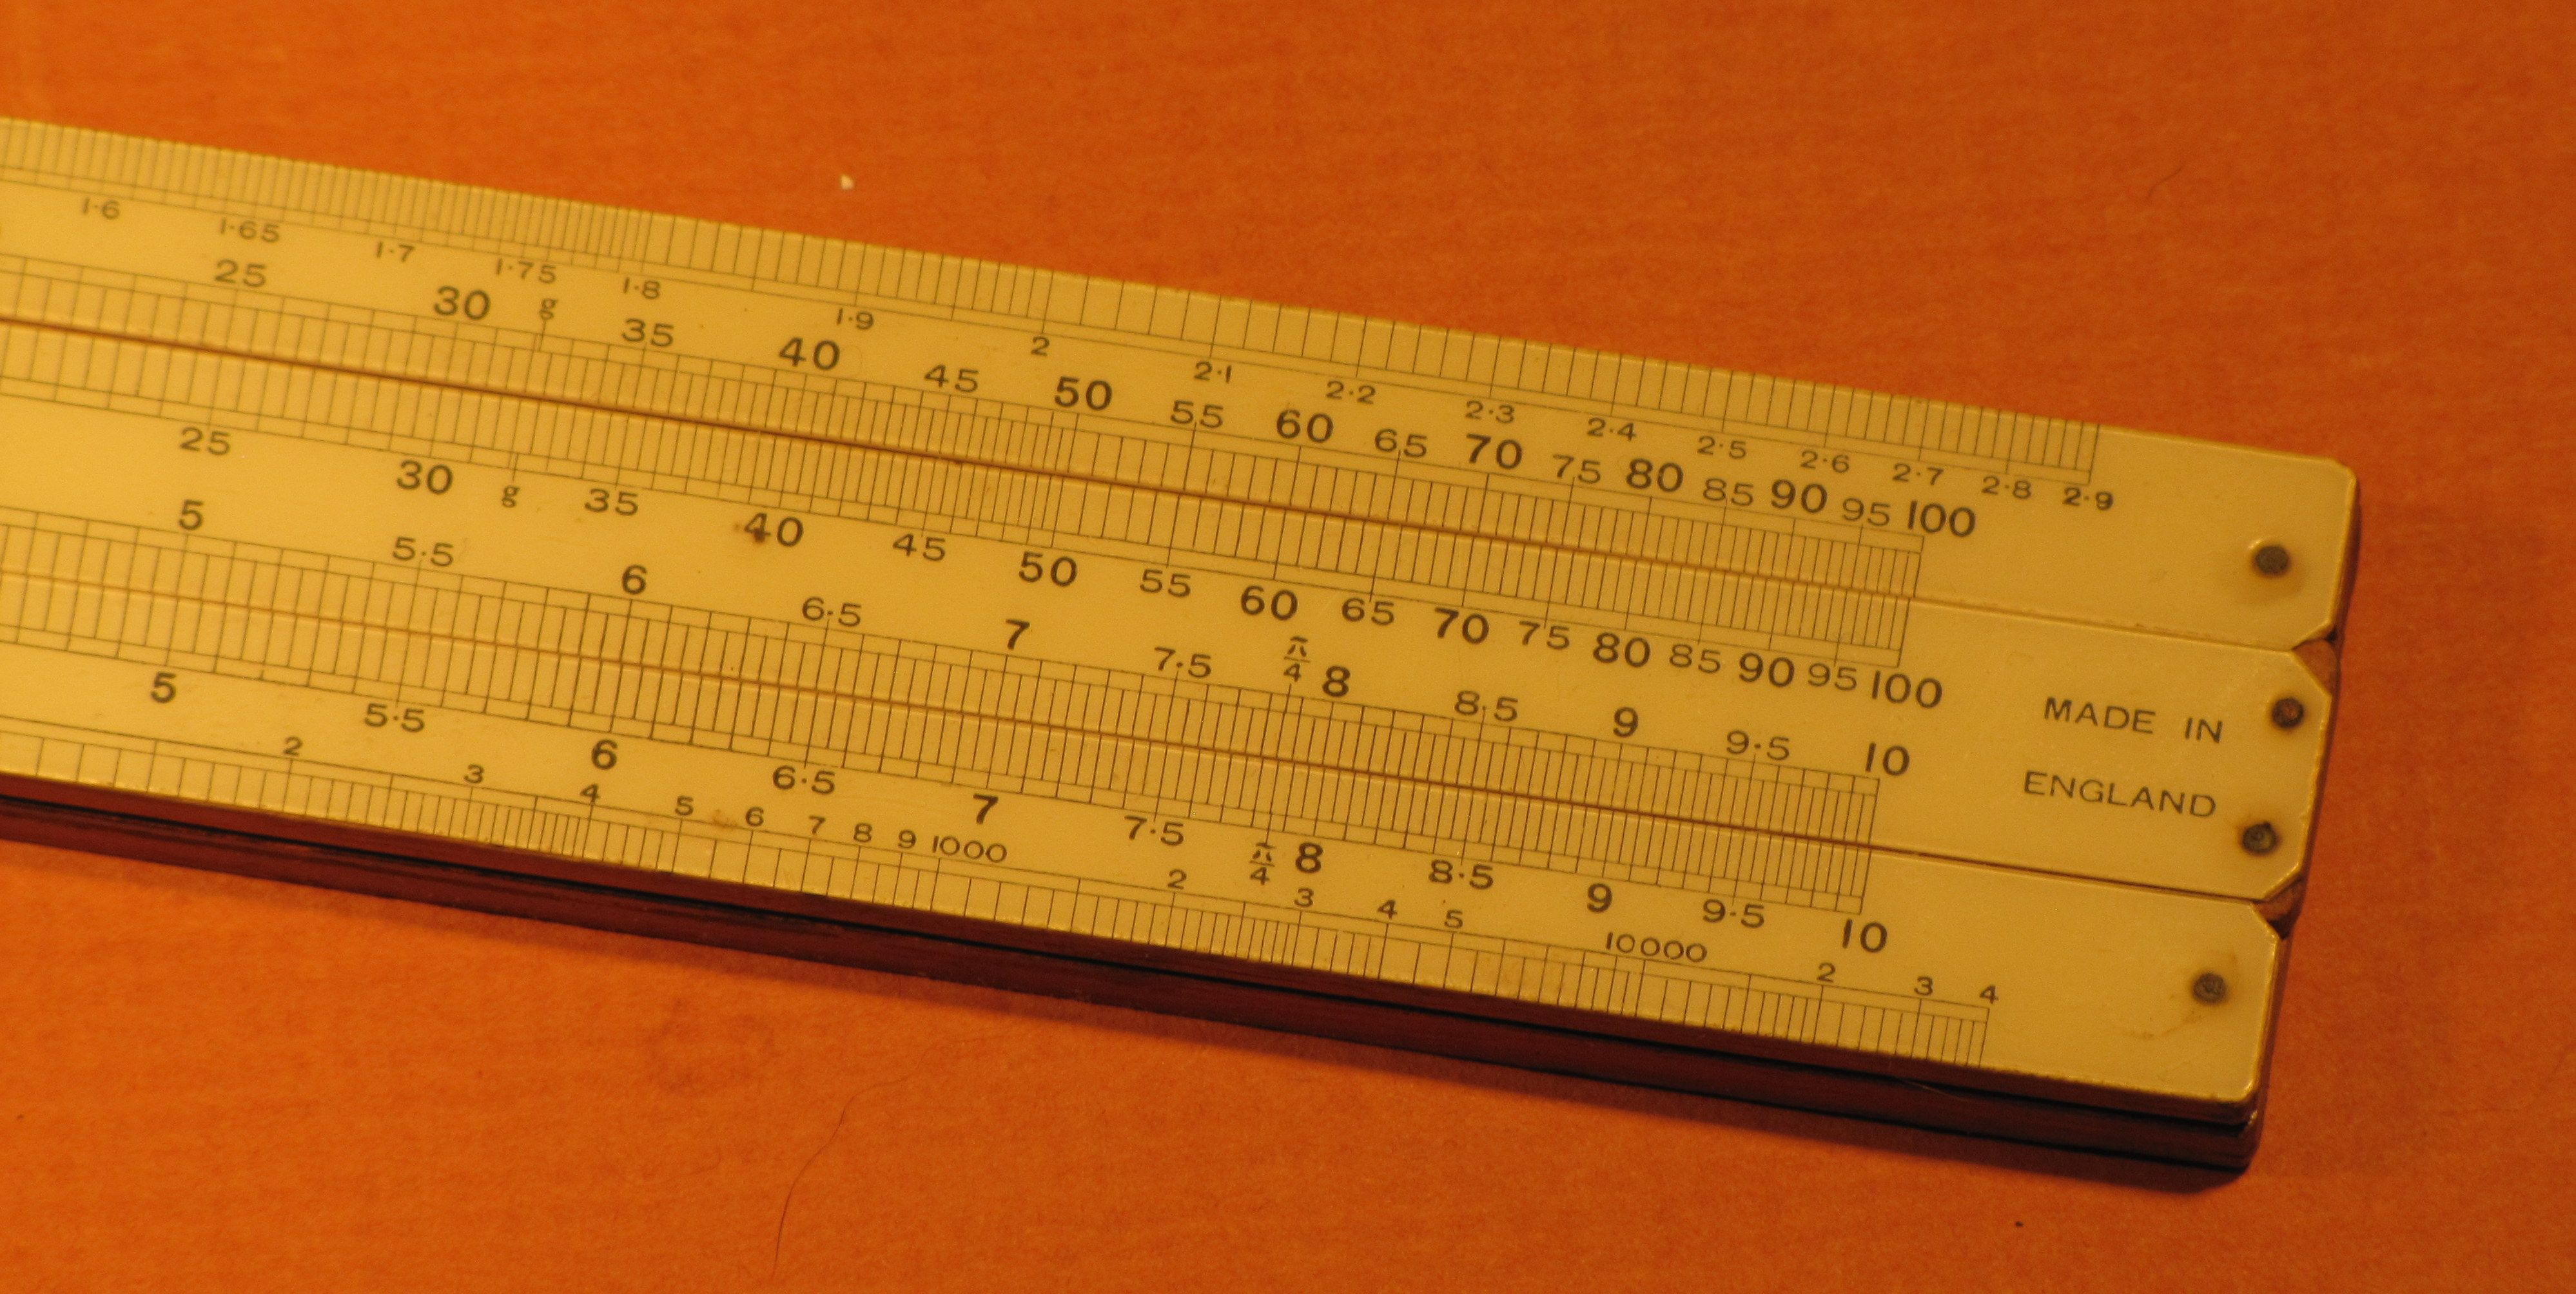 fuller calculator slide rule with instructions